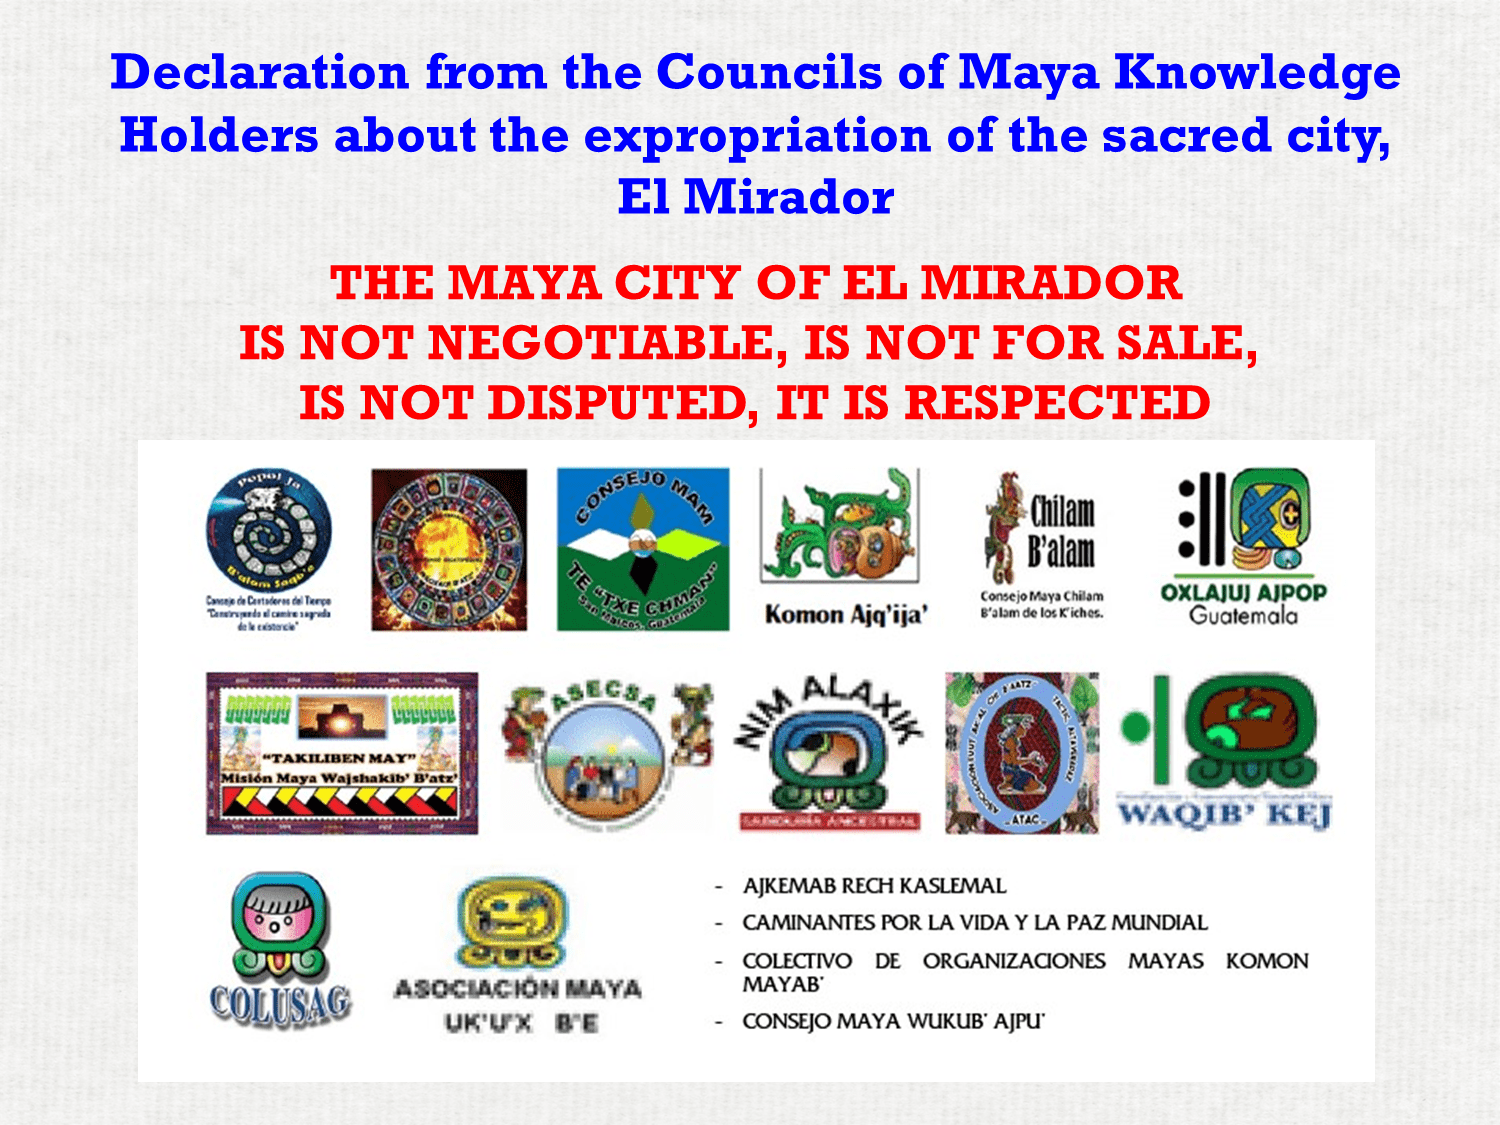 Councils of Maya Knowledge Holders